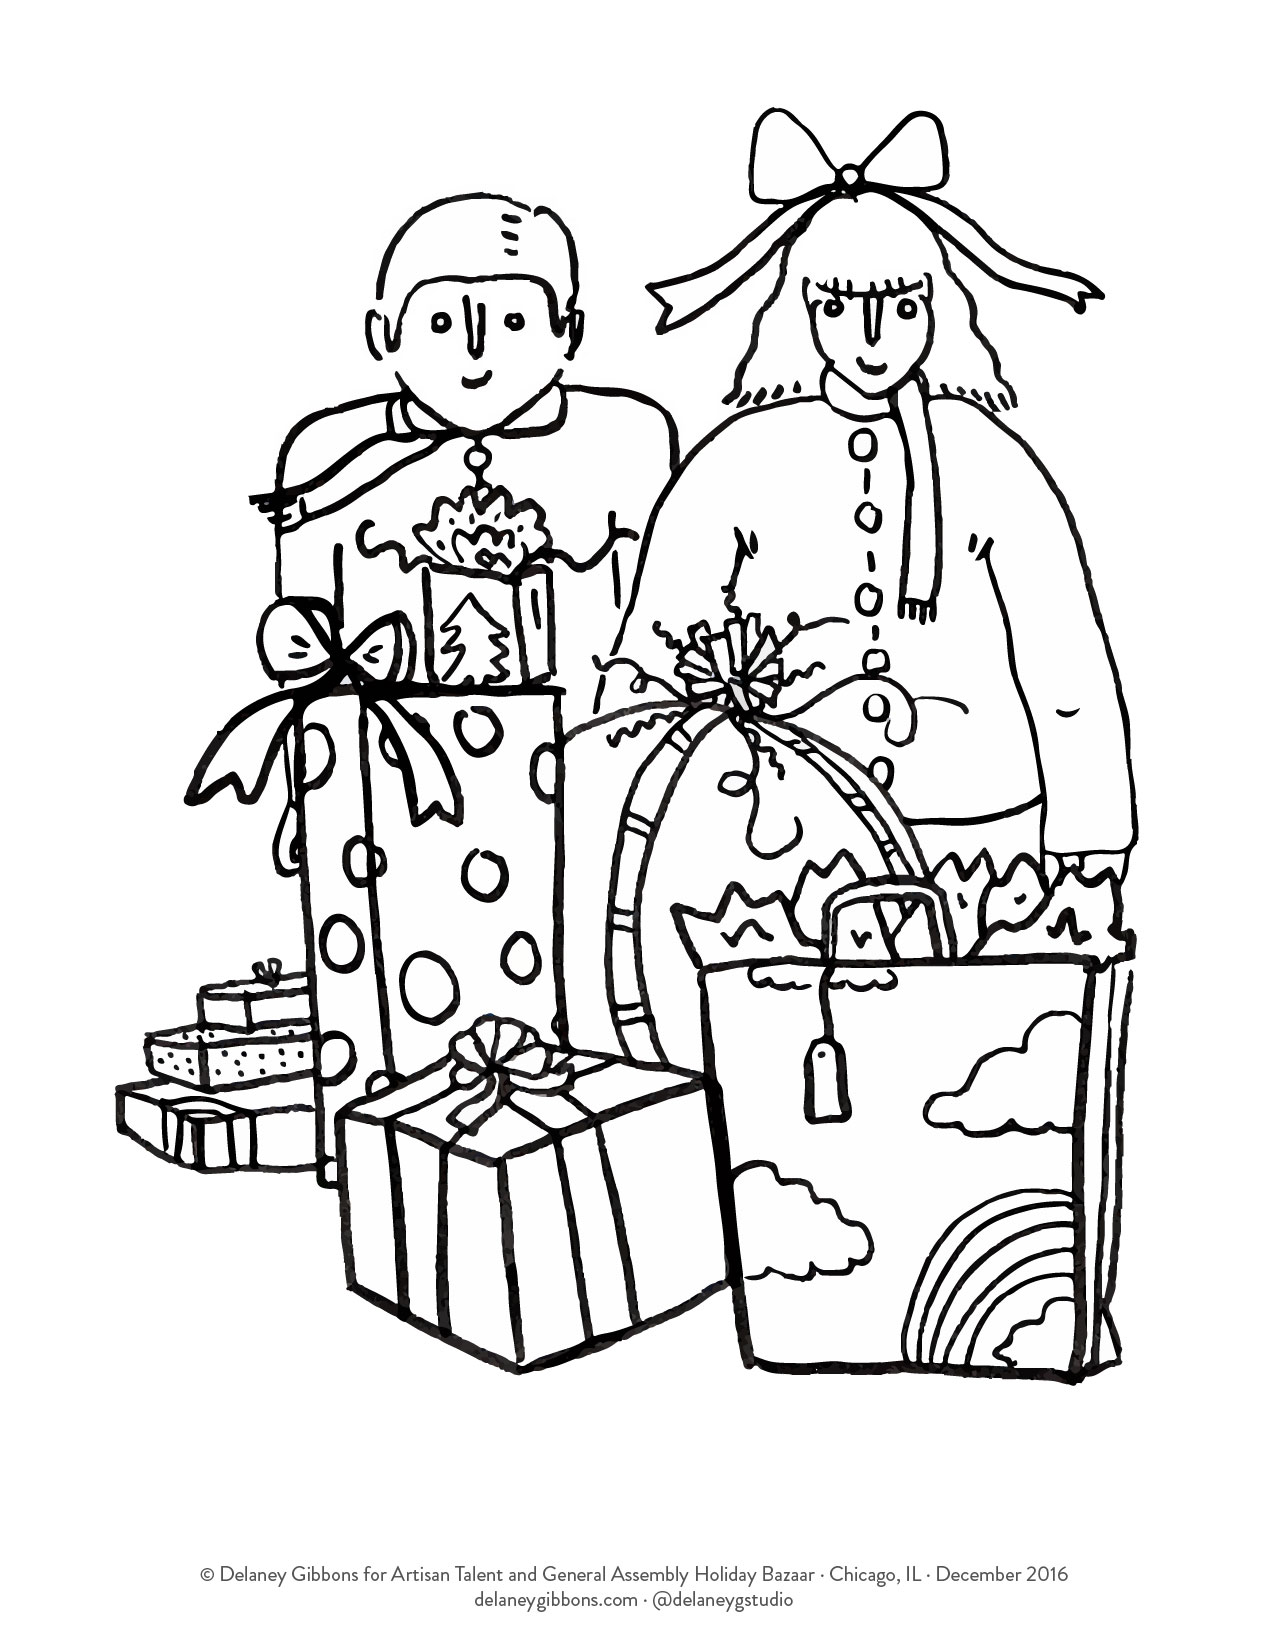 holidaydrawings-giftgivers.jpg